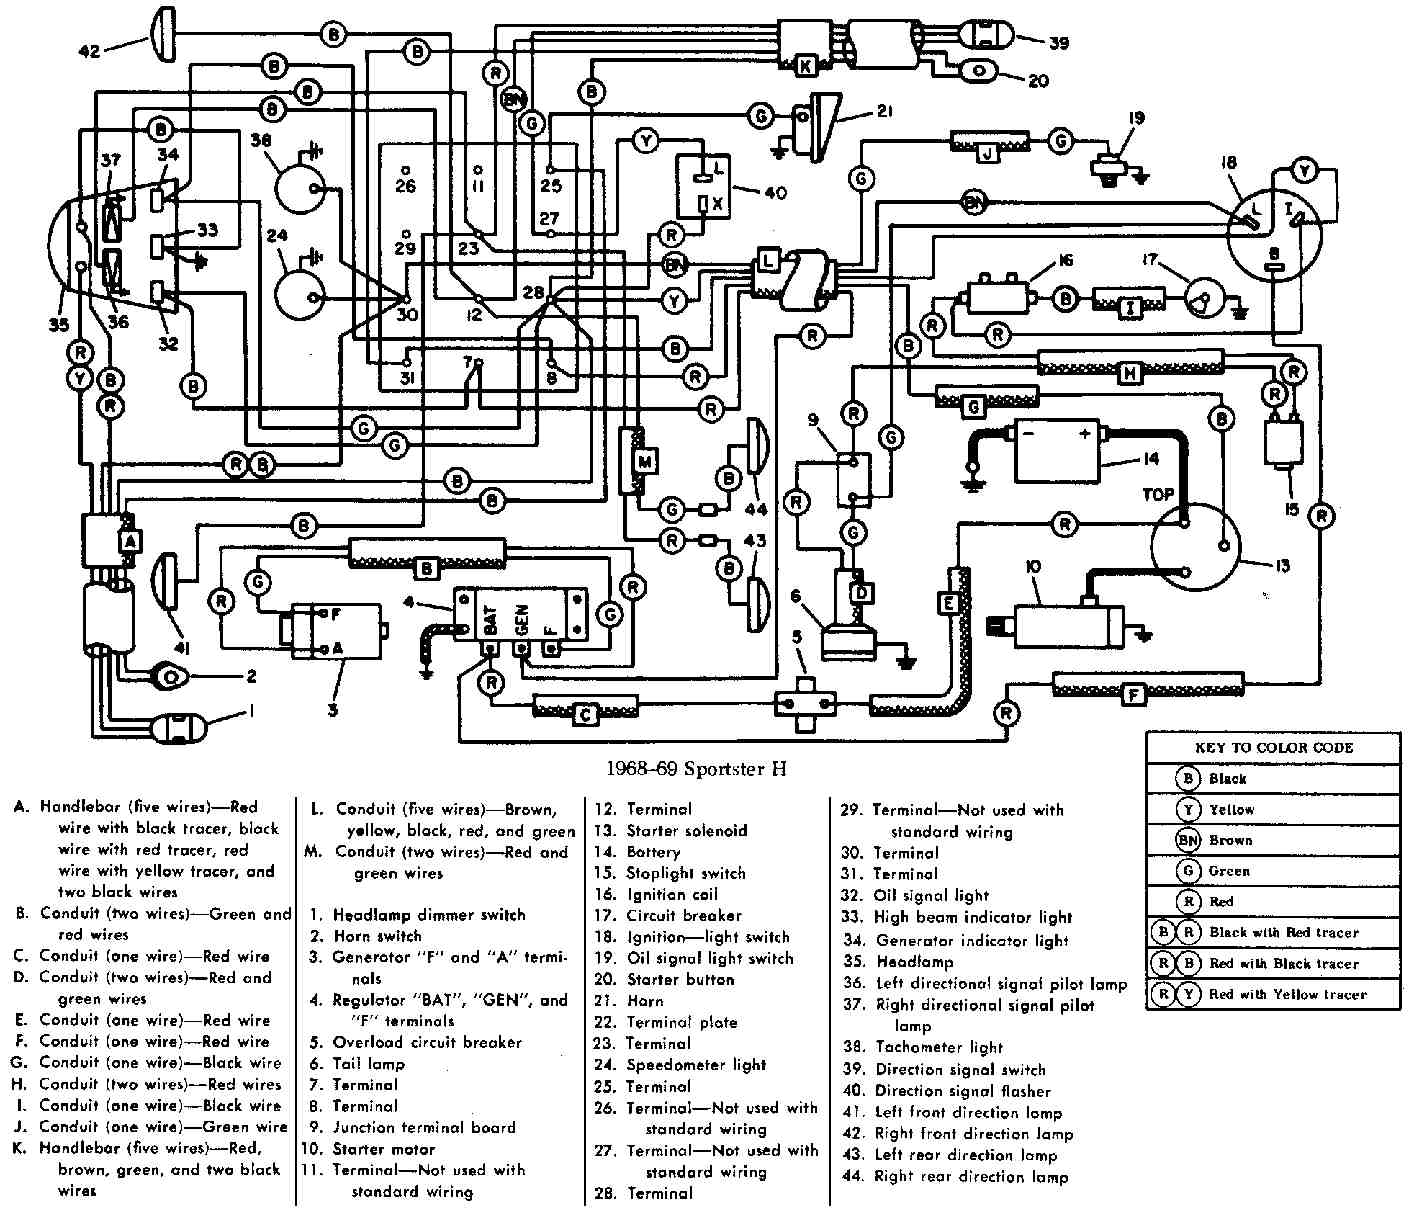 Harley Davidson Sportster 1968 1969 on 2000 Ford F 250 Wiring Diagram